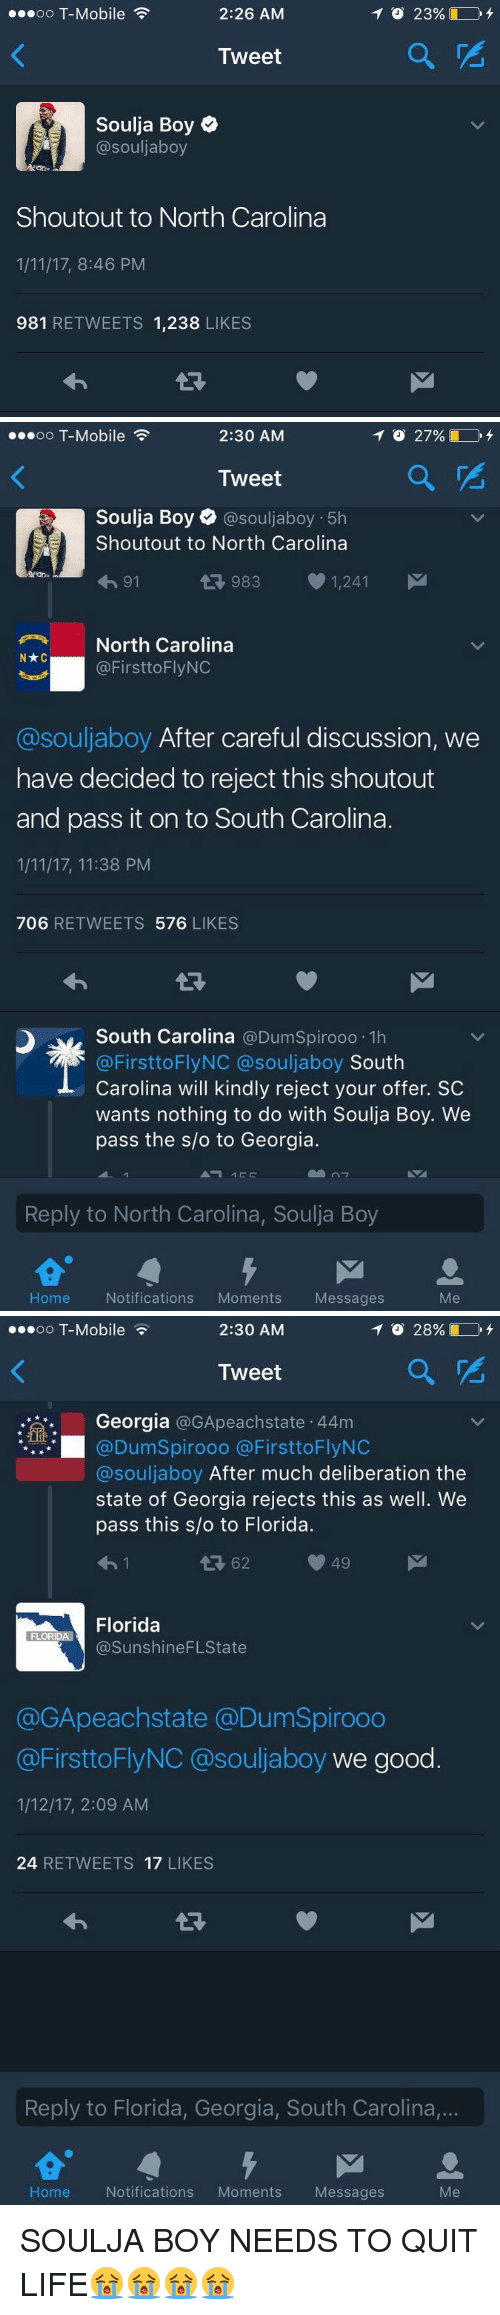 Funny, Soulja Boy, and T-Mobile: 2:26 AM  oo T-Mobile  Tweet  Soulja Boy  @souljaboy  Shoutout to North Carolina  1/11/17, 8:46 PM  981 RETWEETS 1,238  LIKES   2:30 AM  TO 27%  OO  T-Mobile  Tweet  a Soulja Boy o @souljaboy 5h  Shout out to North Carolina  983 1,241  M  91  4 Nxc North Carolina  @FirsttoFlyNC  a souljaboy After careful discussion, we  have decided to reject this shoutout  and pass it on to South Carolina.  1/11/17, 11:38 PM  706  RETWEETS 576  LIKES  South Carolina  @DumSpirooo 1h  @First to Fly NC @souljaboy  South  Carolina will kindly reject your offer. SC  wants nothing to do with Soulja Boy. We  pass the s/o to Georgia.  Reply to North Carolina, Soulja Boy  Home  Notifications  Moments  Messages   ...oo T-Mobile  2:30 AM  Tweet  Georgia  @GApeachstate 44m  @DumSpirooo a First toFly NC  @souljaboy After much deliberation the  state of Georgia rejects this as well. We  pass this slo to Florida.  49  Florida  FLORIDA  @Sunshine FLState  @GApeachstate @DumSpirooo  @FirsttoFlyNC souljaboy we good  1/12/17, 2:09 AM  24  RETWEETS 17  LIKES  Reply to Florida, Georgia, South Carolina,...  Me  Home Notifications  Moments  Messages SOULJA BOY NEEDS TO QUIT LIFE😭😭😭😭